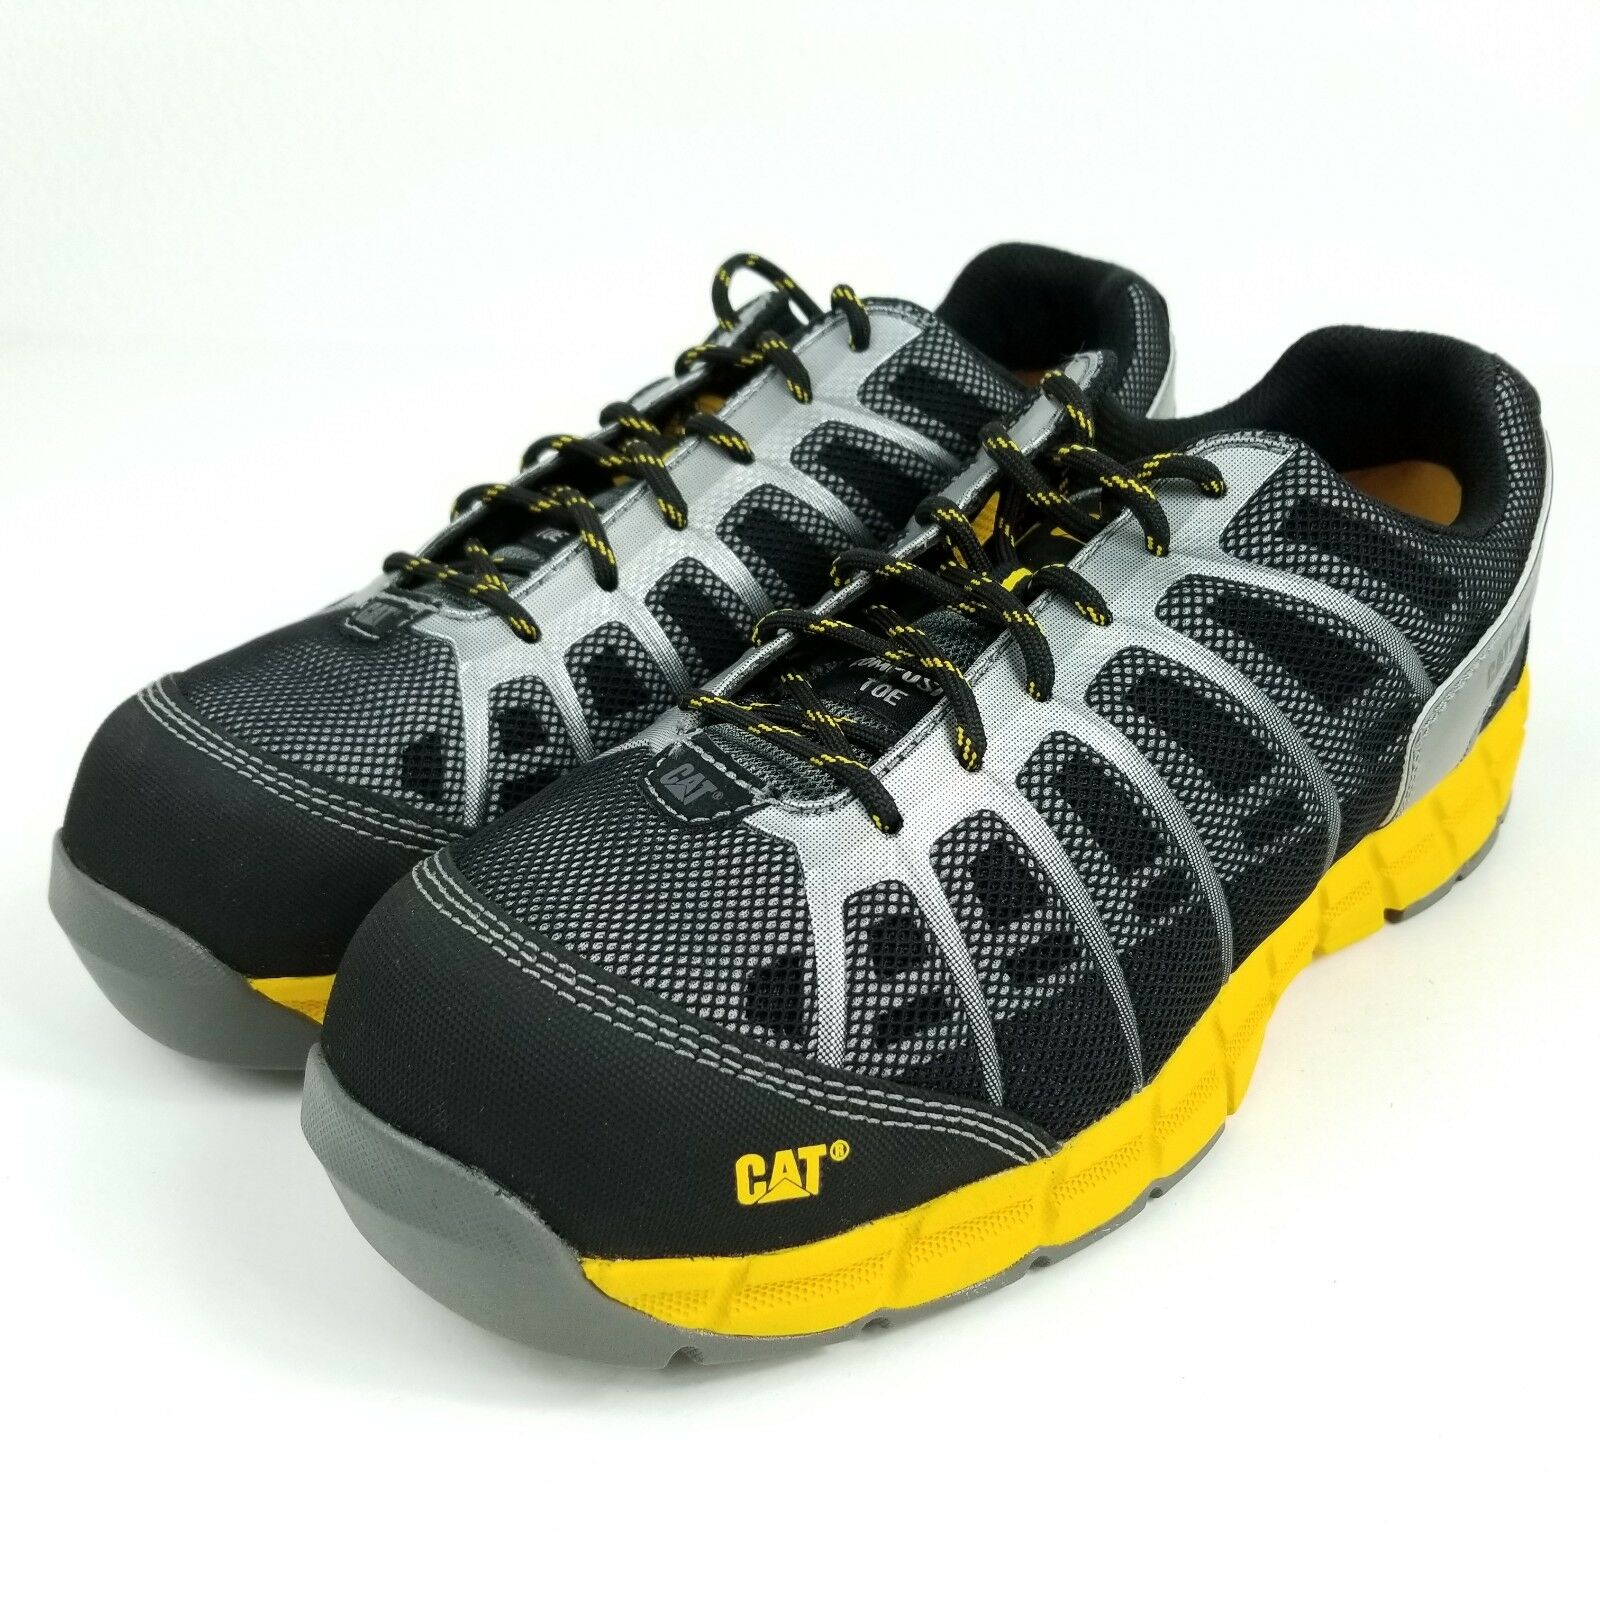 Caterpillar Flex CT Men's sz 11 Composite Toe Work Shoes Yellow CAT P90643